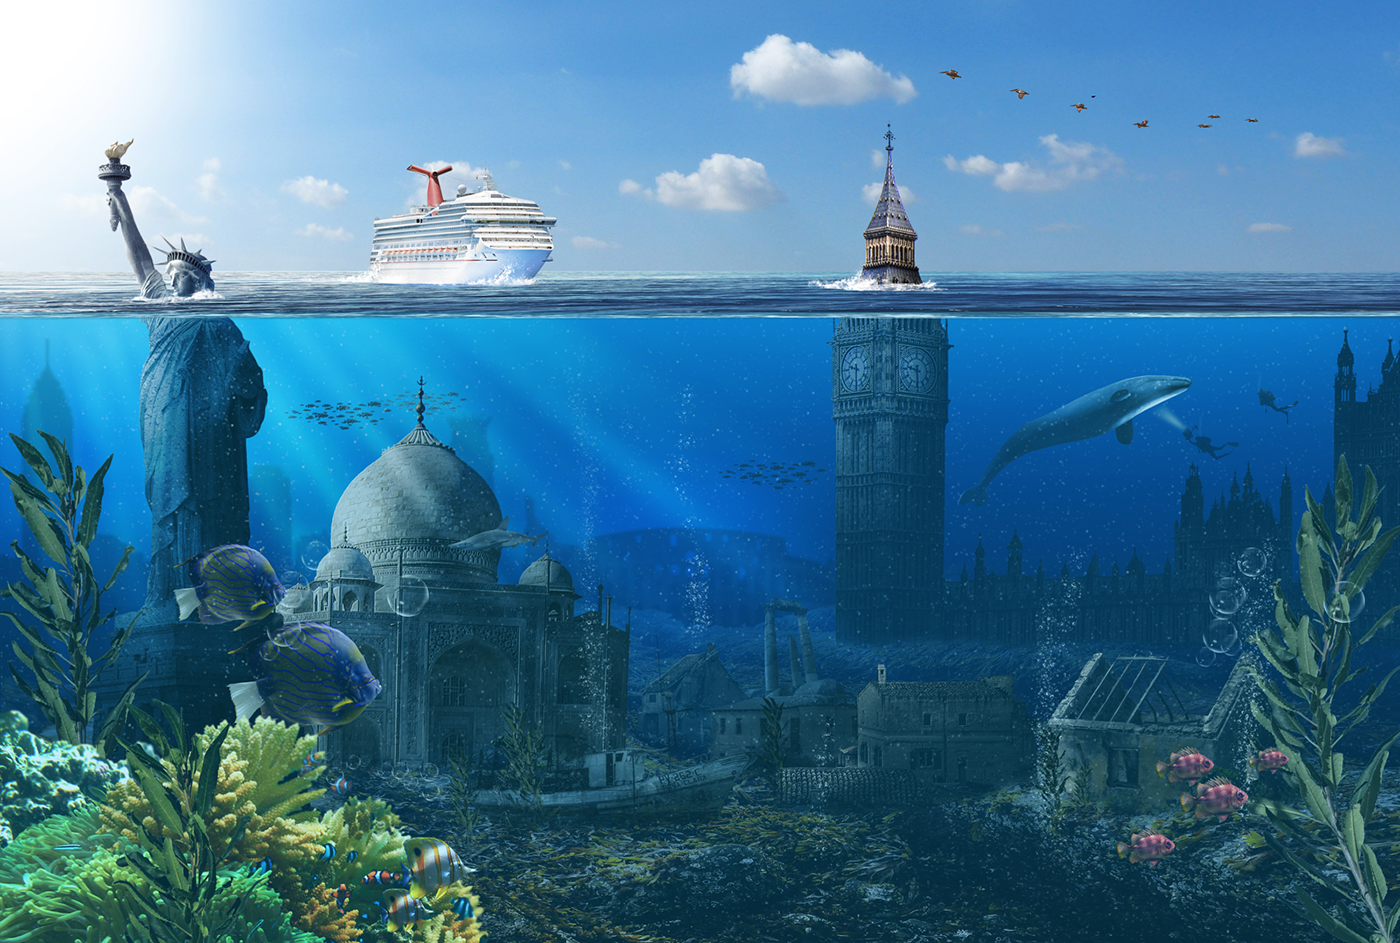 Underwater city by Daniel Sinoca on Behance